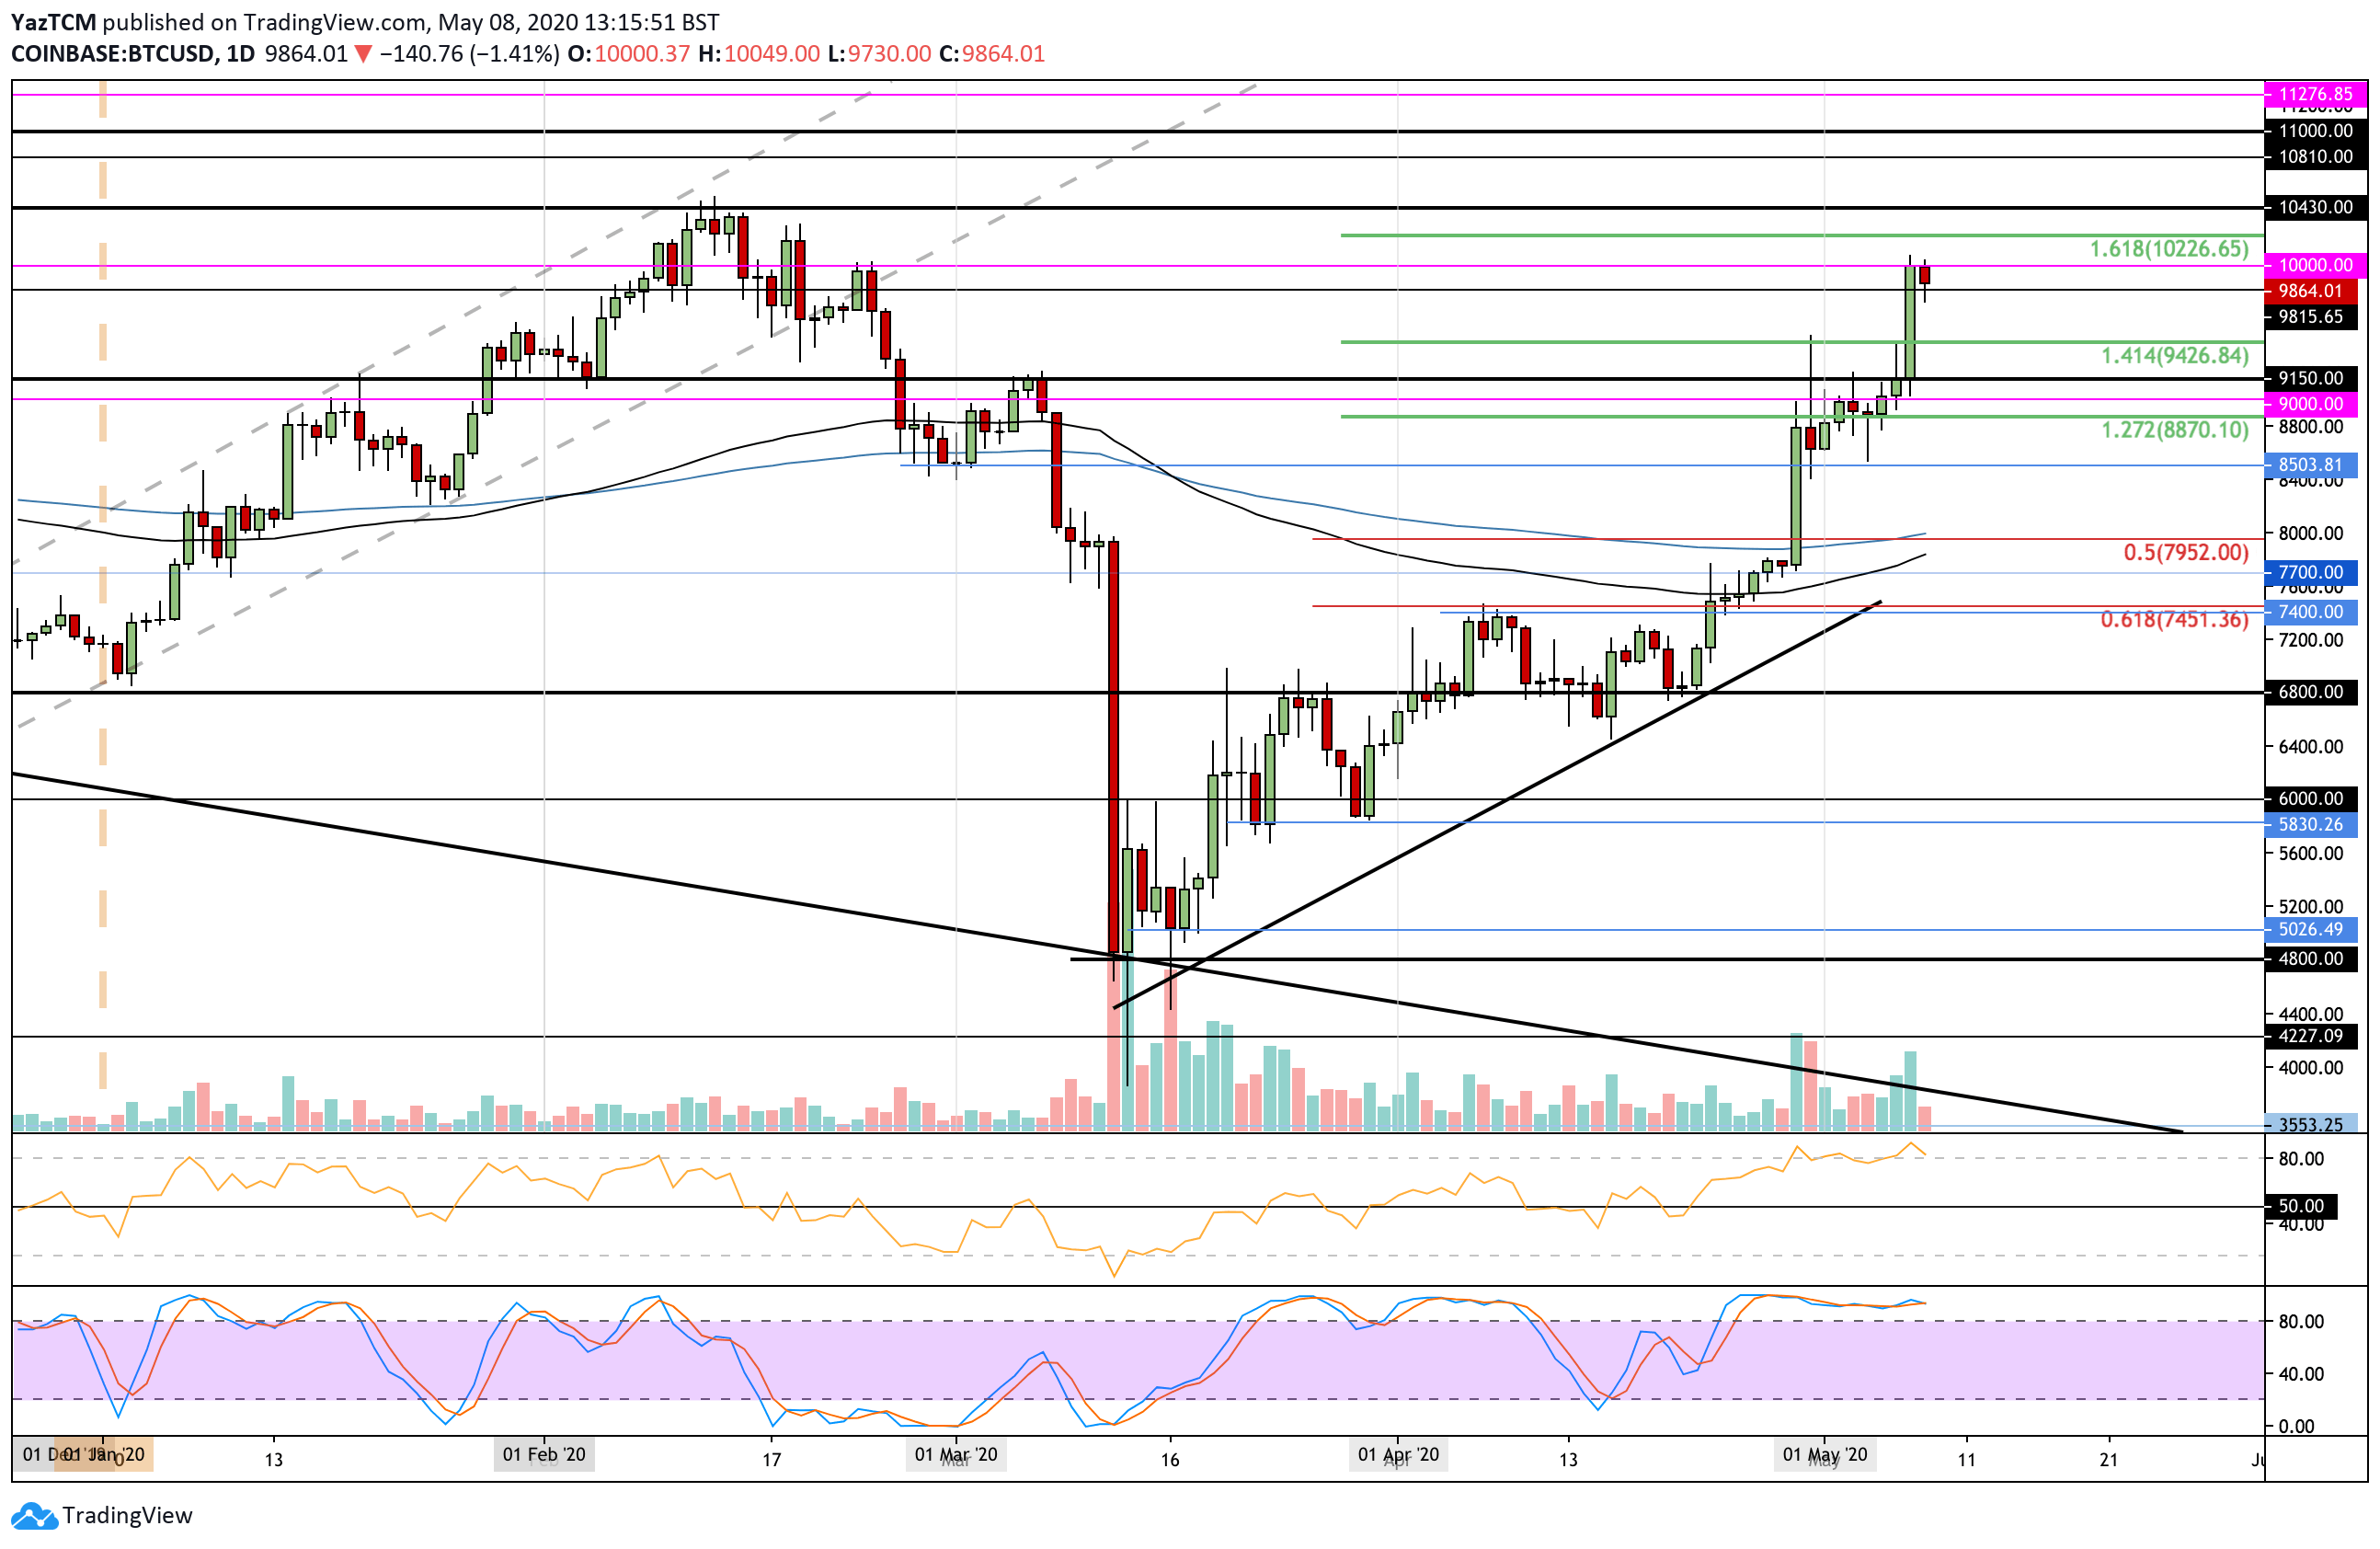 "btcusd-may8 ""width ="" 2588 ""peak ="" 1684 ""srcset ="" https://cryptopotato.com/wp-content/uploads/2020/05/btcusd-may8.png 2588w, https://cryptopotato.com/ wp-content / uploads / 2020/05 / btcusd-may8-300x195.png 300w, https://cryptopotato.com/wp-content/uploads/2020/05/btcusd-may8-1024x666.png 1024w, https: // cryptopotato.com/wp-content/uploads/2020/05/btcusd-may8-768x500.png 768w, https://cryptopotato.com/wp-content/uploads/2020/05/btcusd-may8-1536x999.png 1536w, https://cryptopotato.com/wp-content/uploads/2020/05/btcusd-may8-2048x1333.png 2048w, https://cryptopotato.com/wp-content/uploads/2020/05/btcusd-may8-50x33 .png 50w ""data-lazy-size ="" (max-width: 2588px) 100vw, 2588px ""src ="" https://cryptopotato.com/wp-content/uploads/2020/05/btcusd-may8.png ""/ ><noscript><img class="